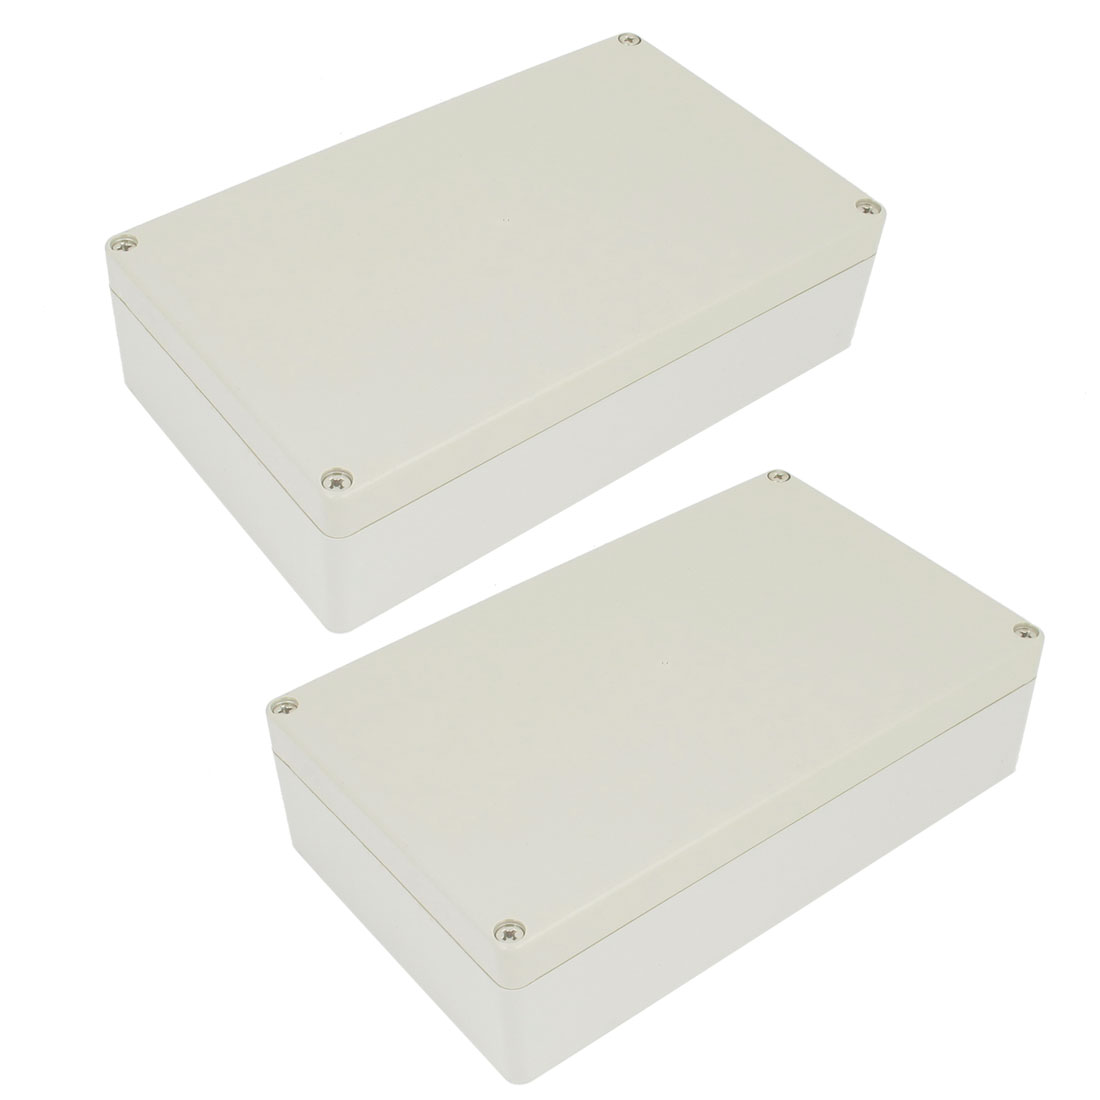 2 Pcs Plastic Mounted Power Protective Case Junction Box 199 x 120 x 56mm